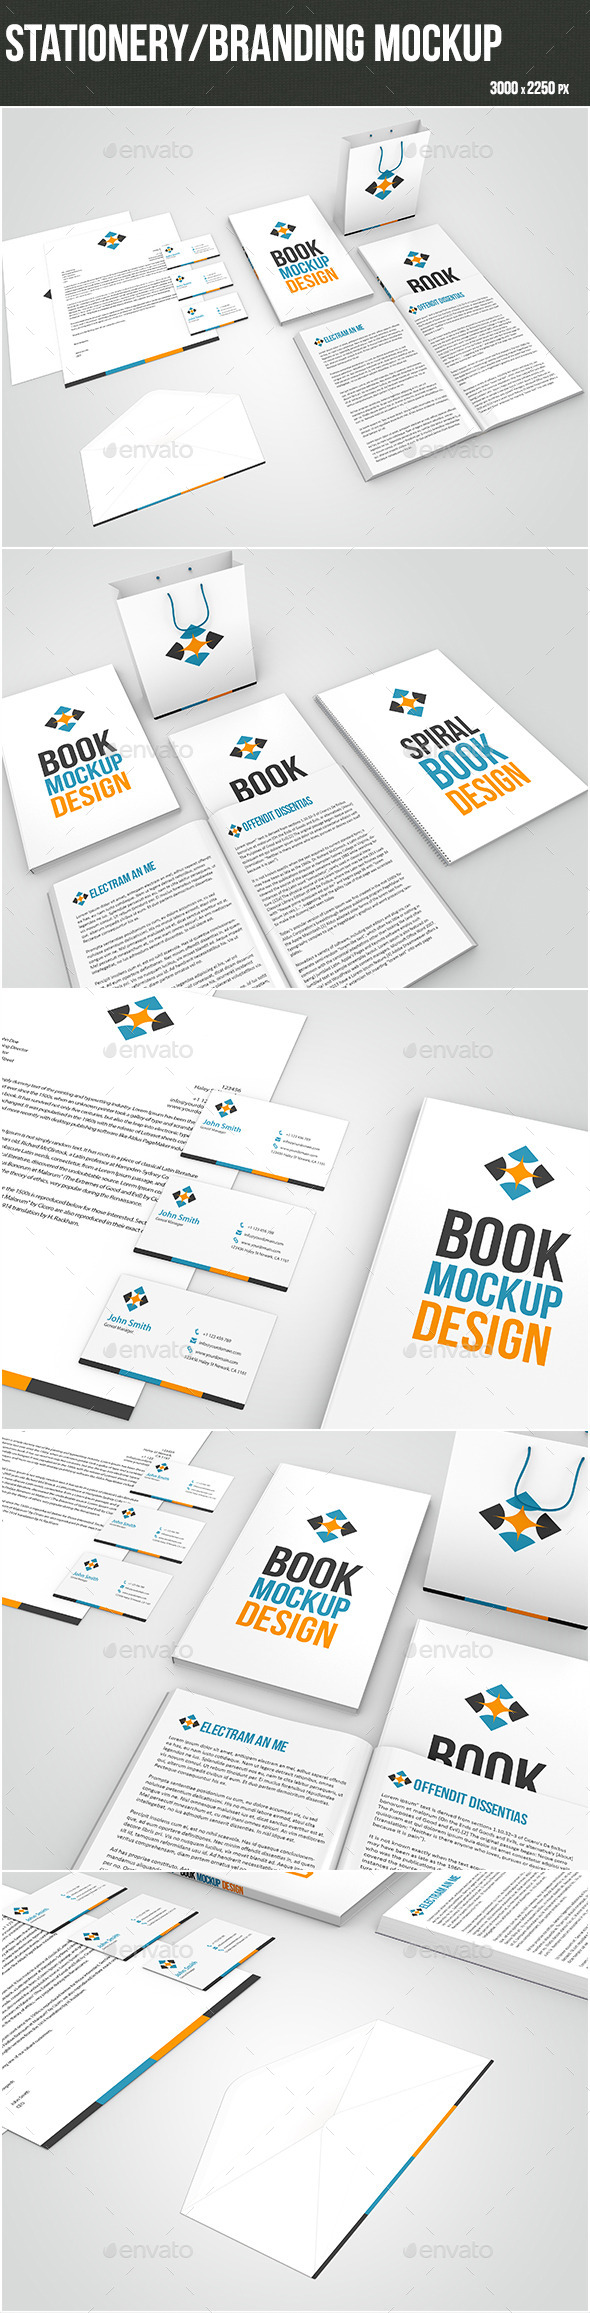 GraphicRiver Stationery Branding Mock-up 9640969